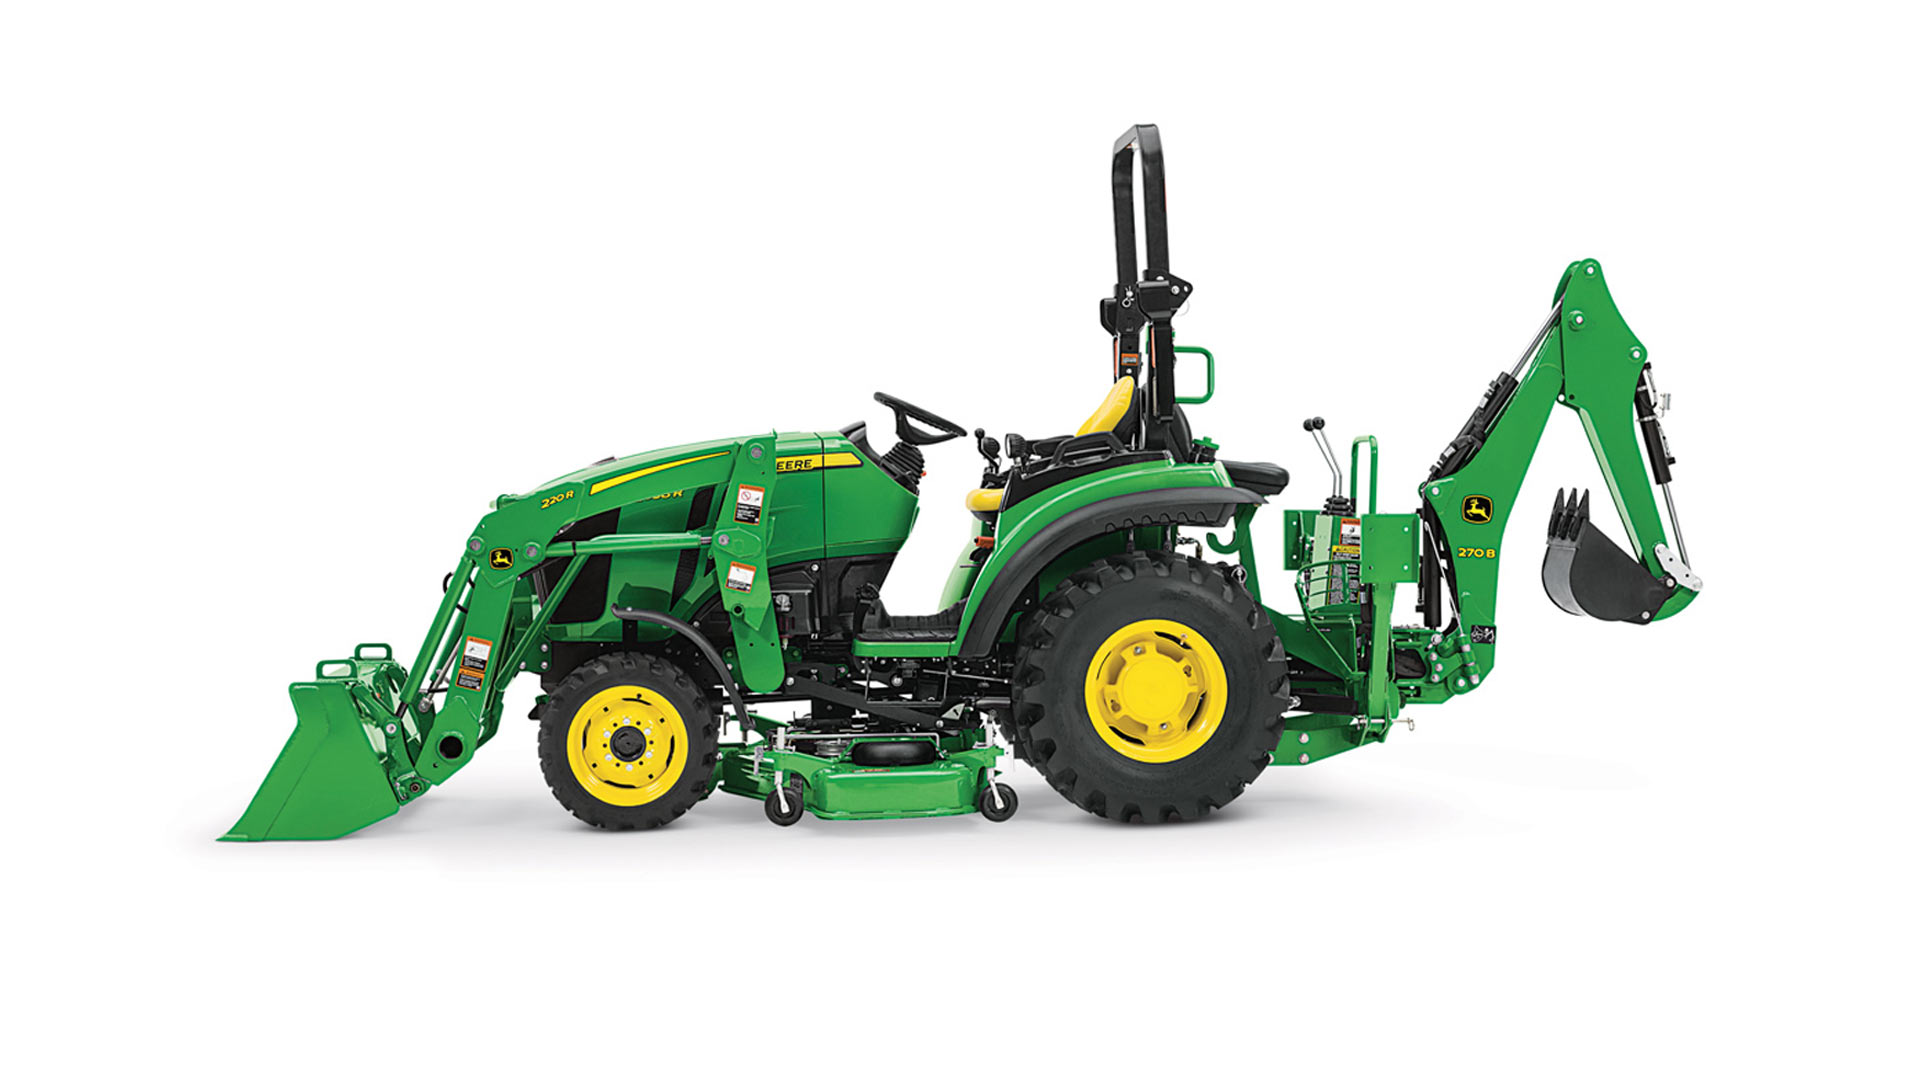 Utility Tractor Attachments & Implements | John Deere US